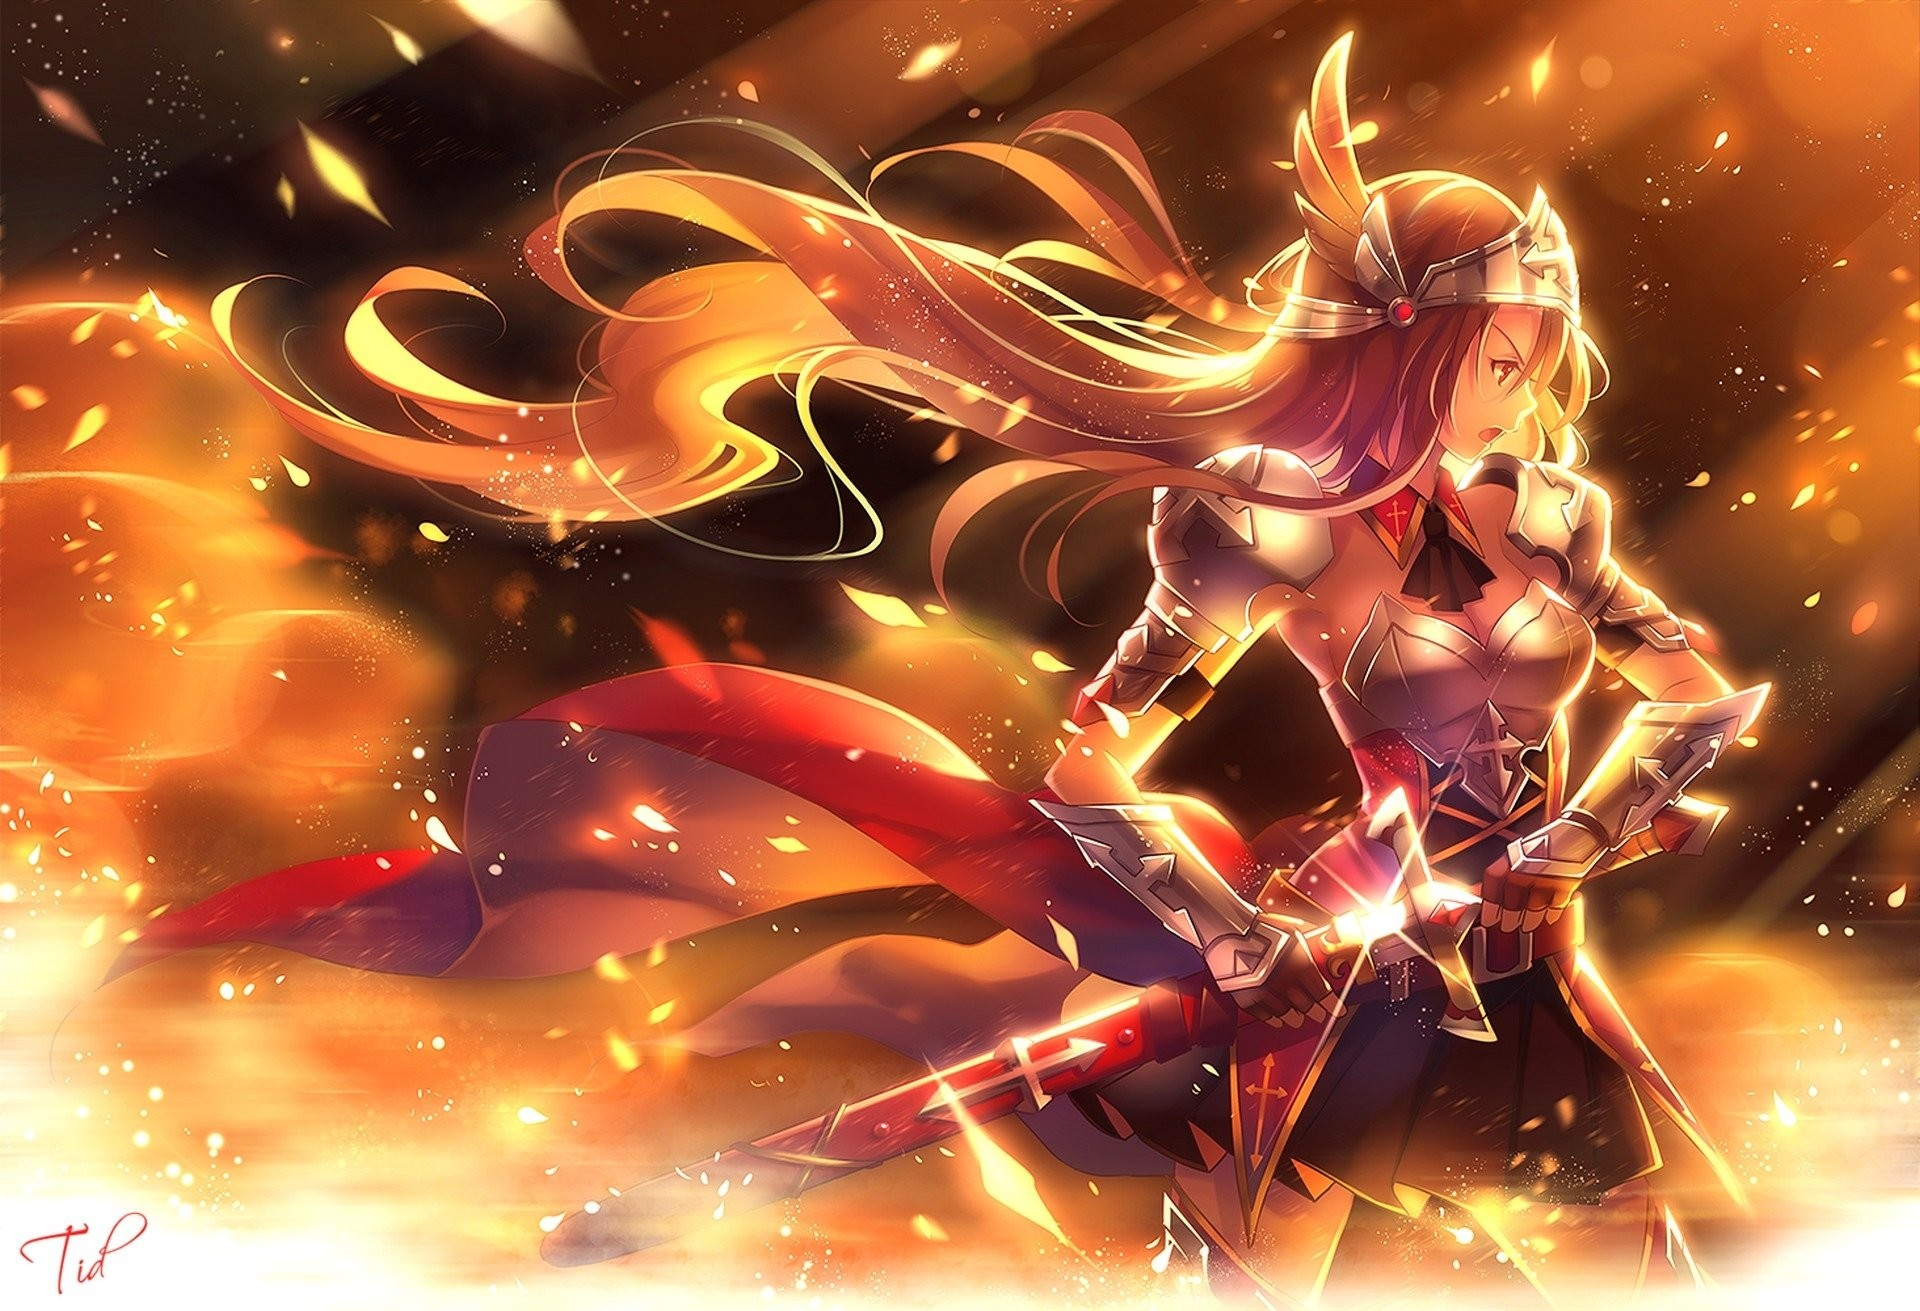 1920x1311 Anime - Original Blonde Armor Sword Anime Woman Warrior Girl Long Hair  Wallpaper